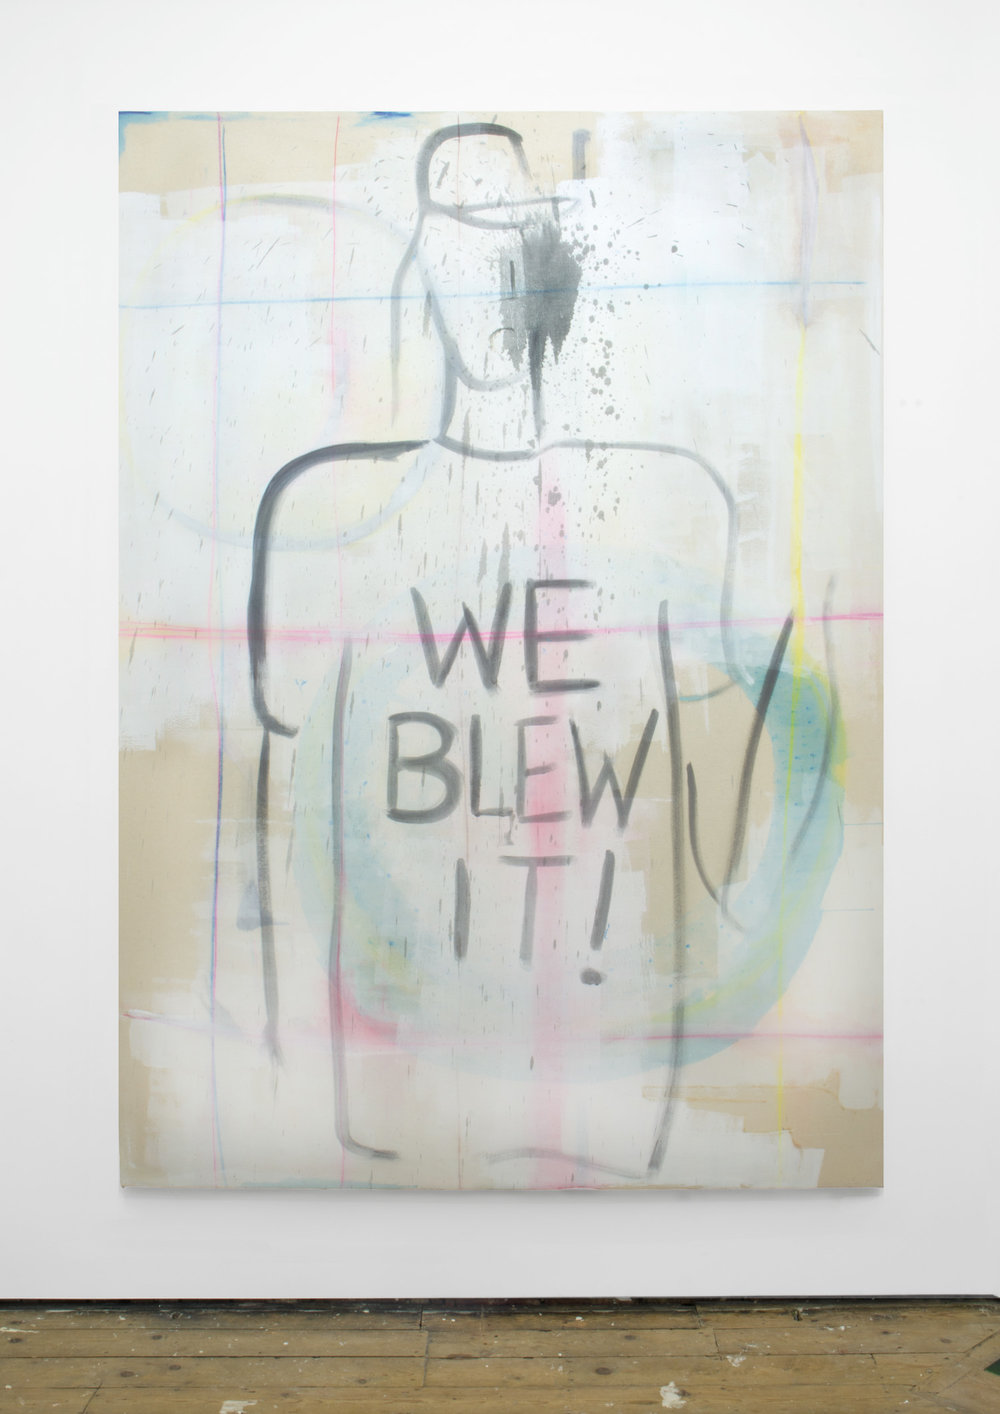 Badge, 2015, 259 x 184 cm, acrylic, oil, emulsion and chalk on canvas.